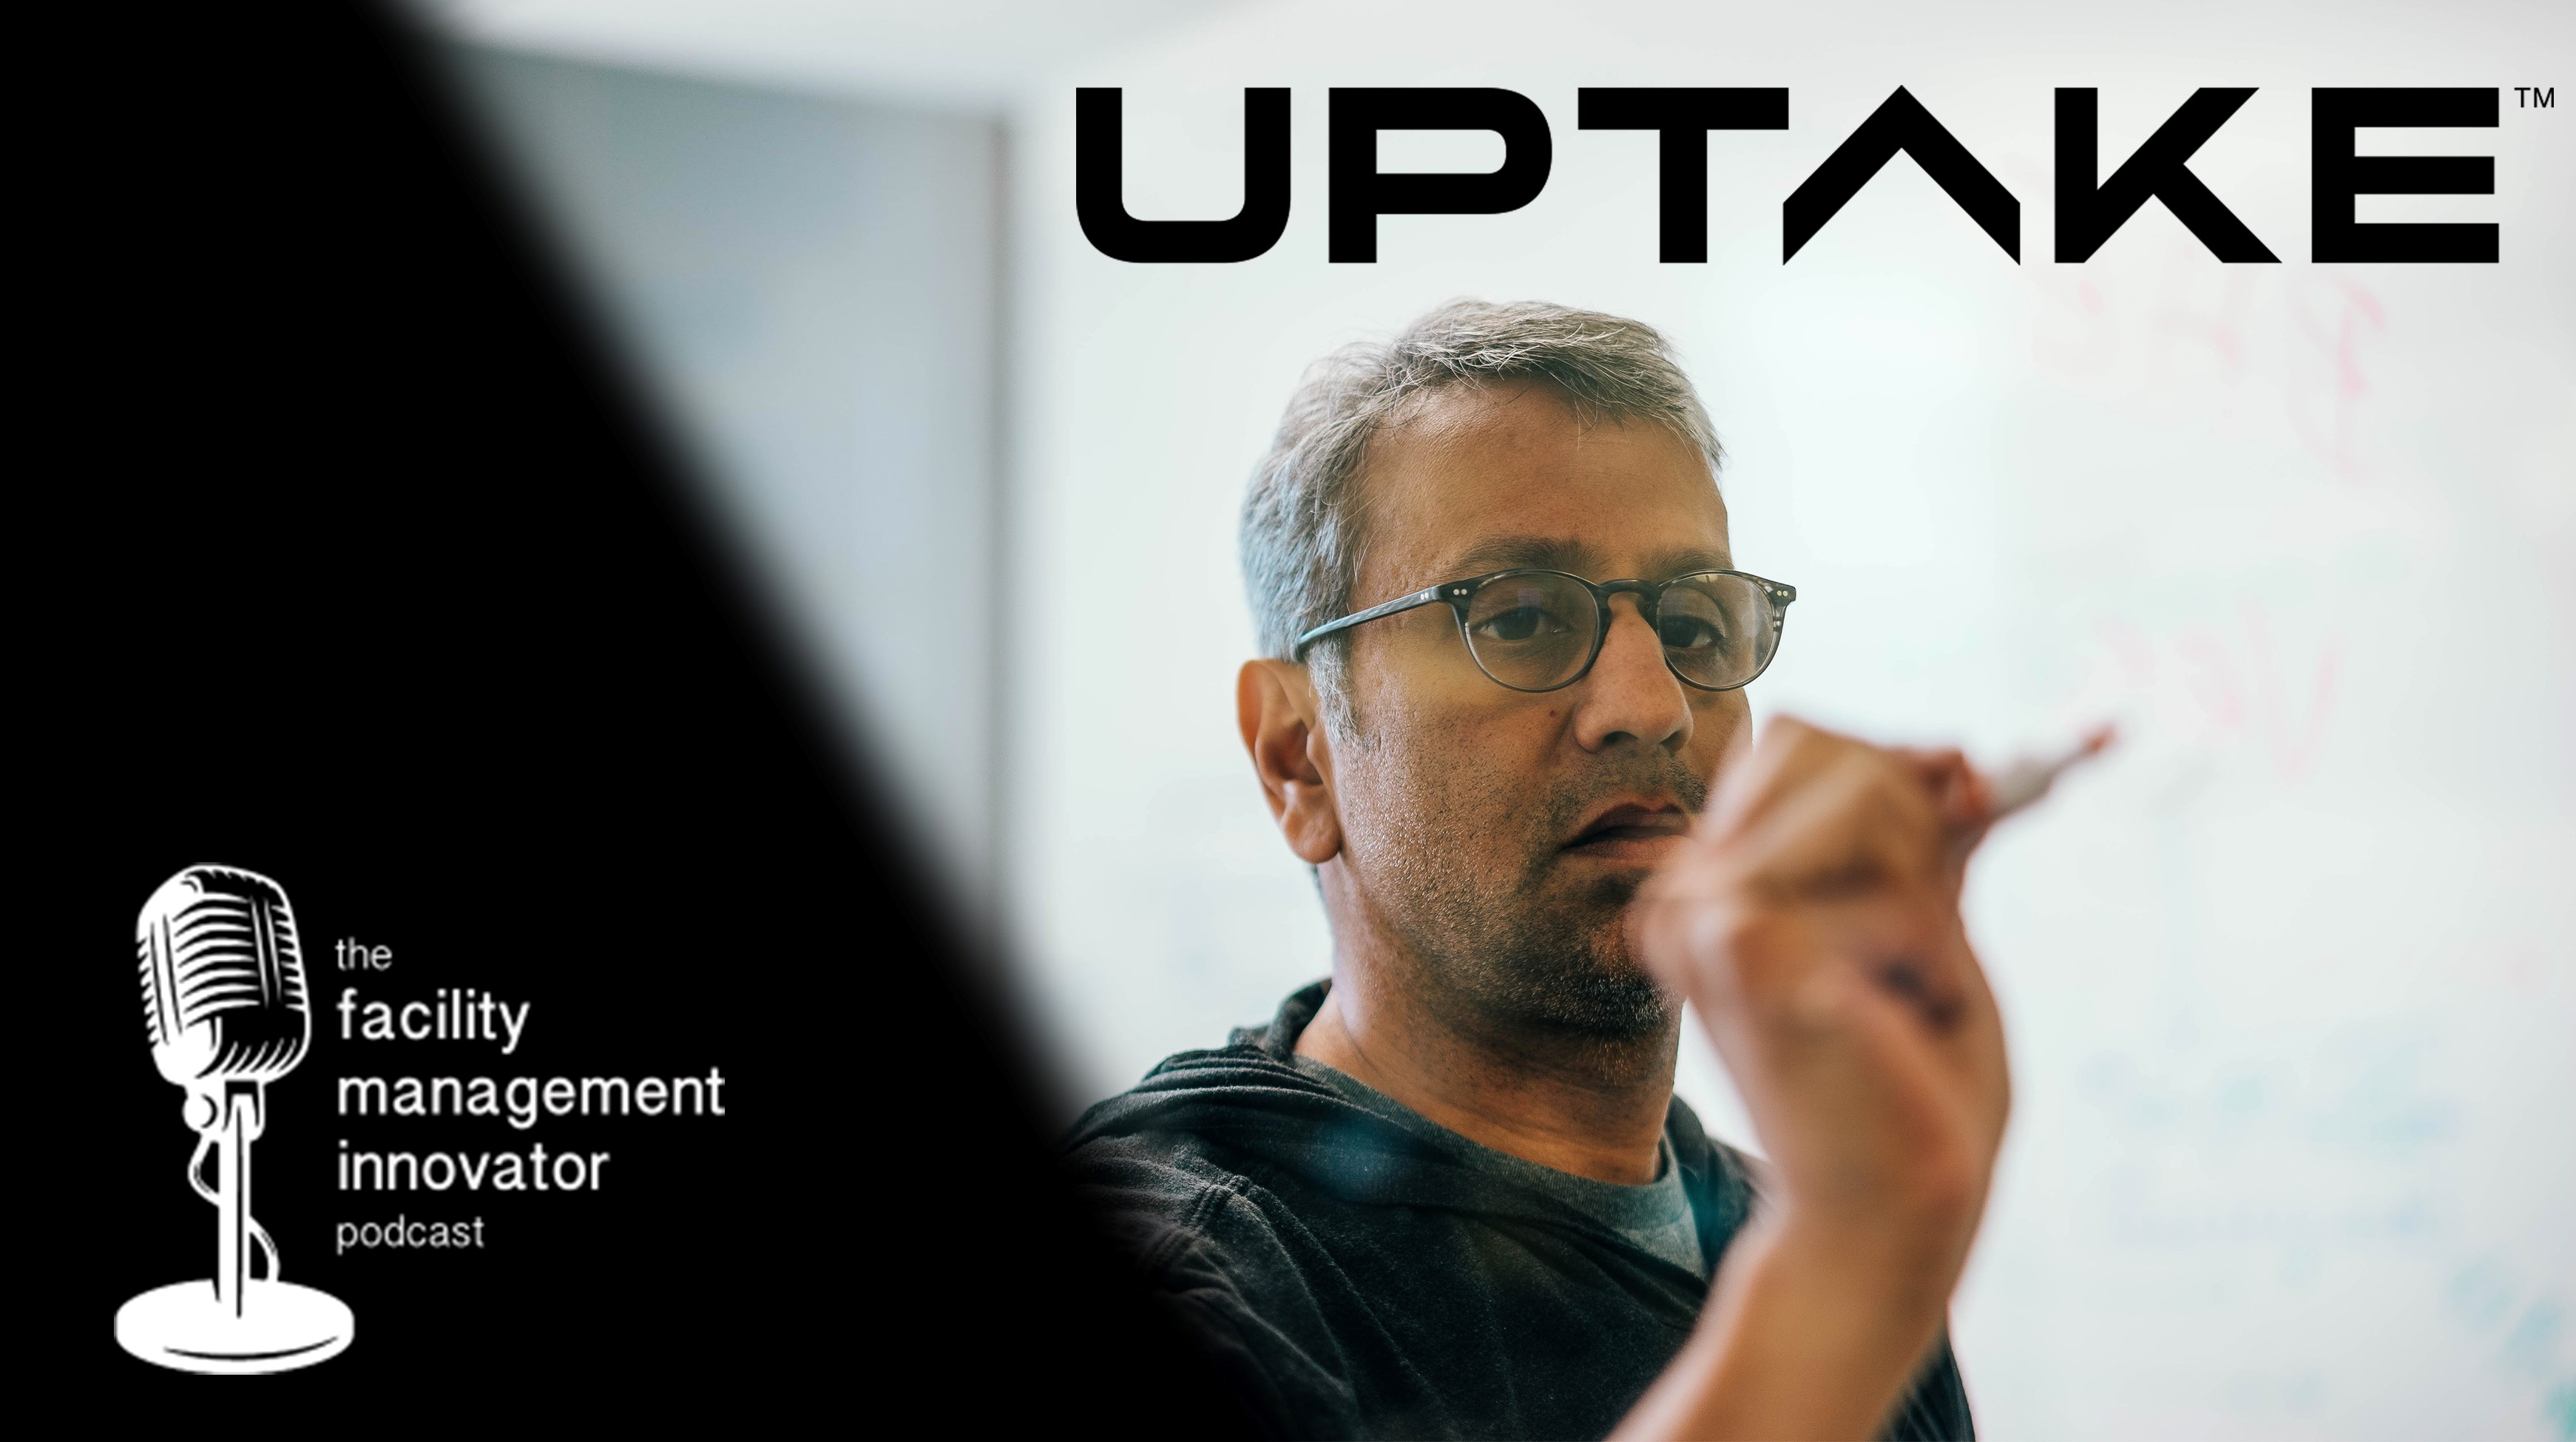 Ep. 58: IoT for FMs - Getting Started with Predictive Data Analytics | Sonny Garg - Uptake